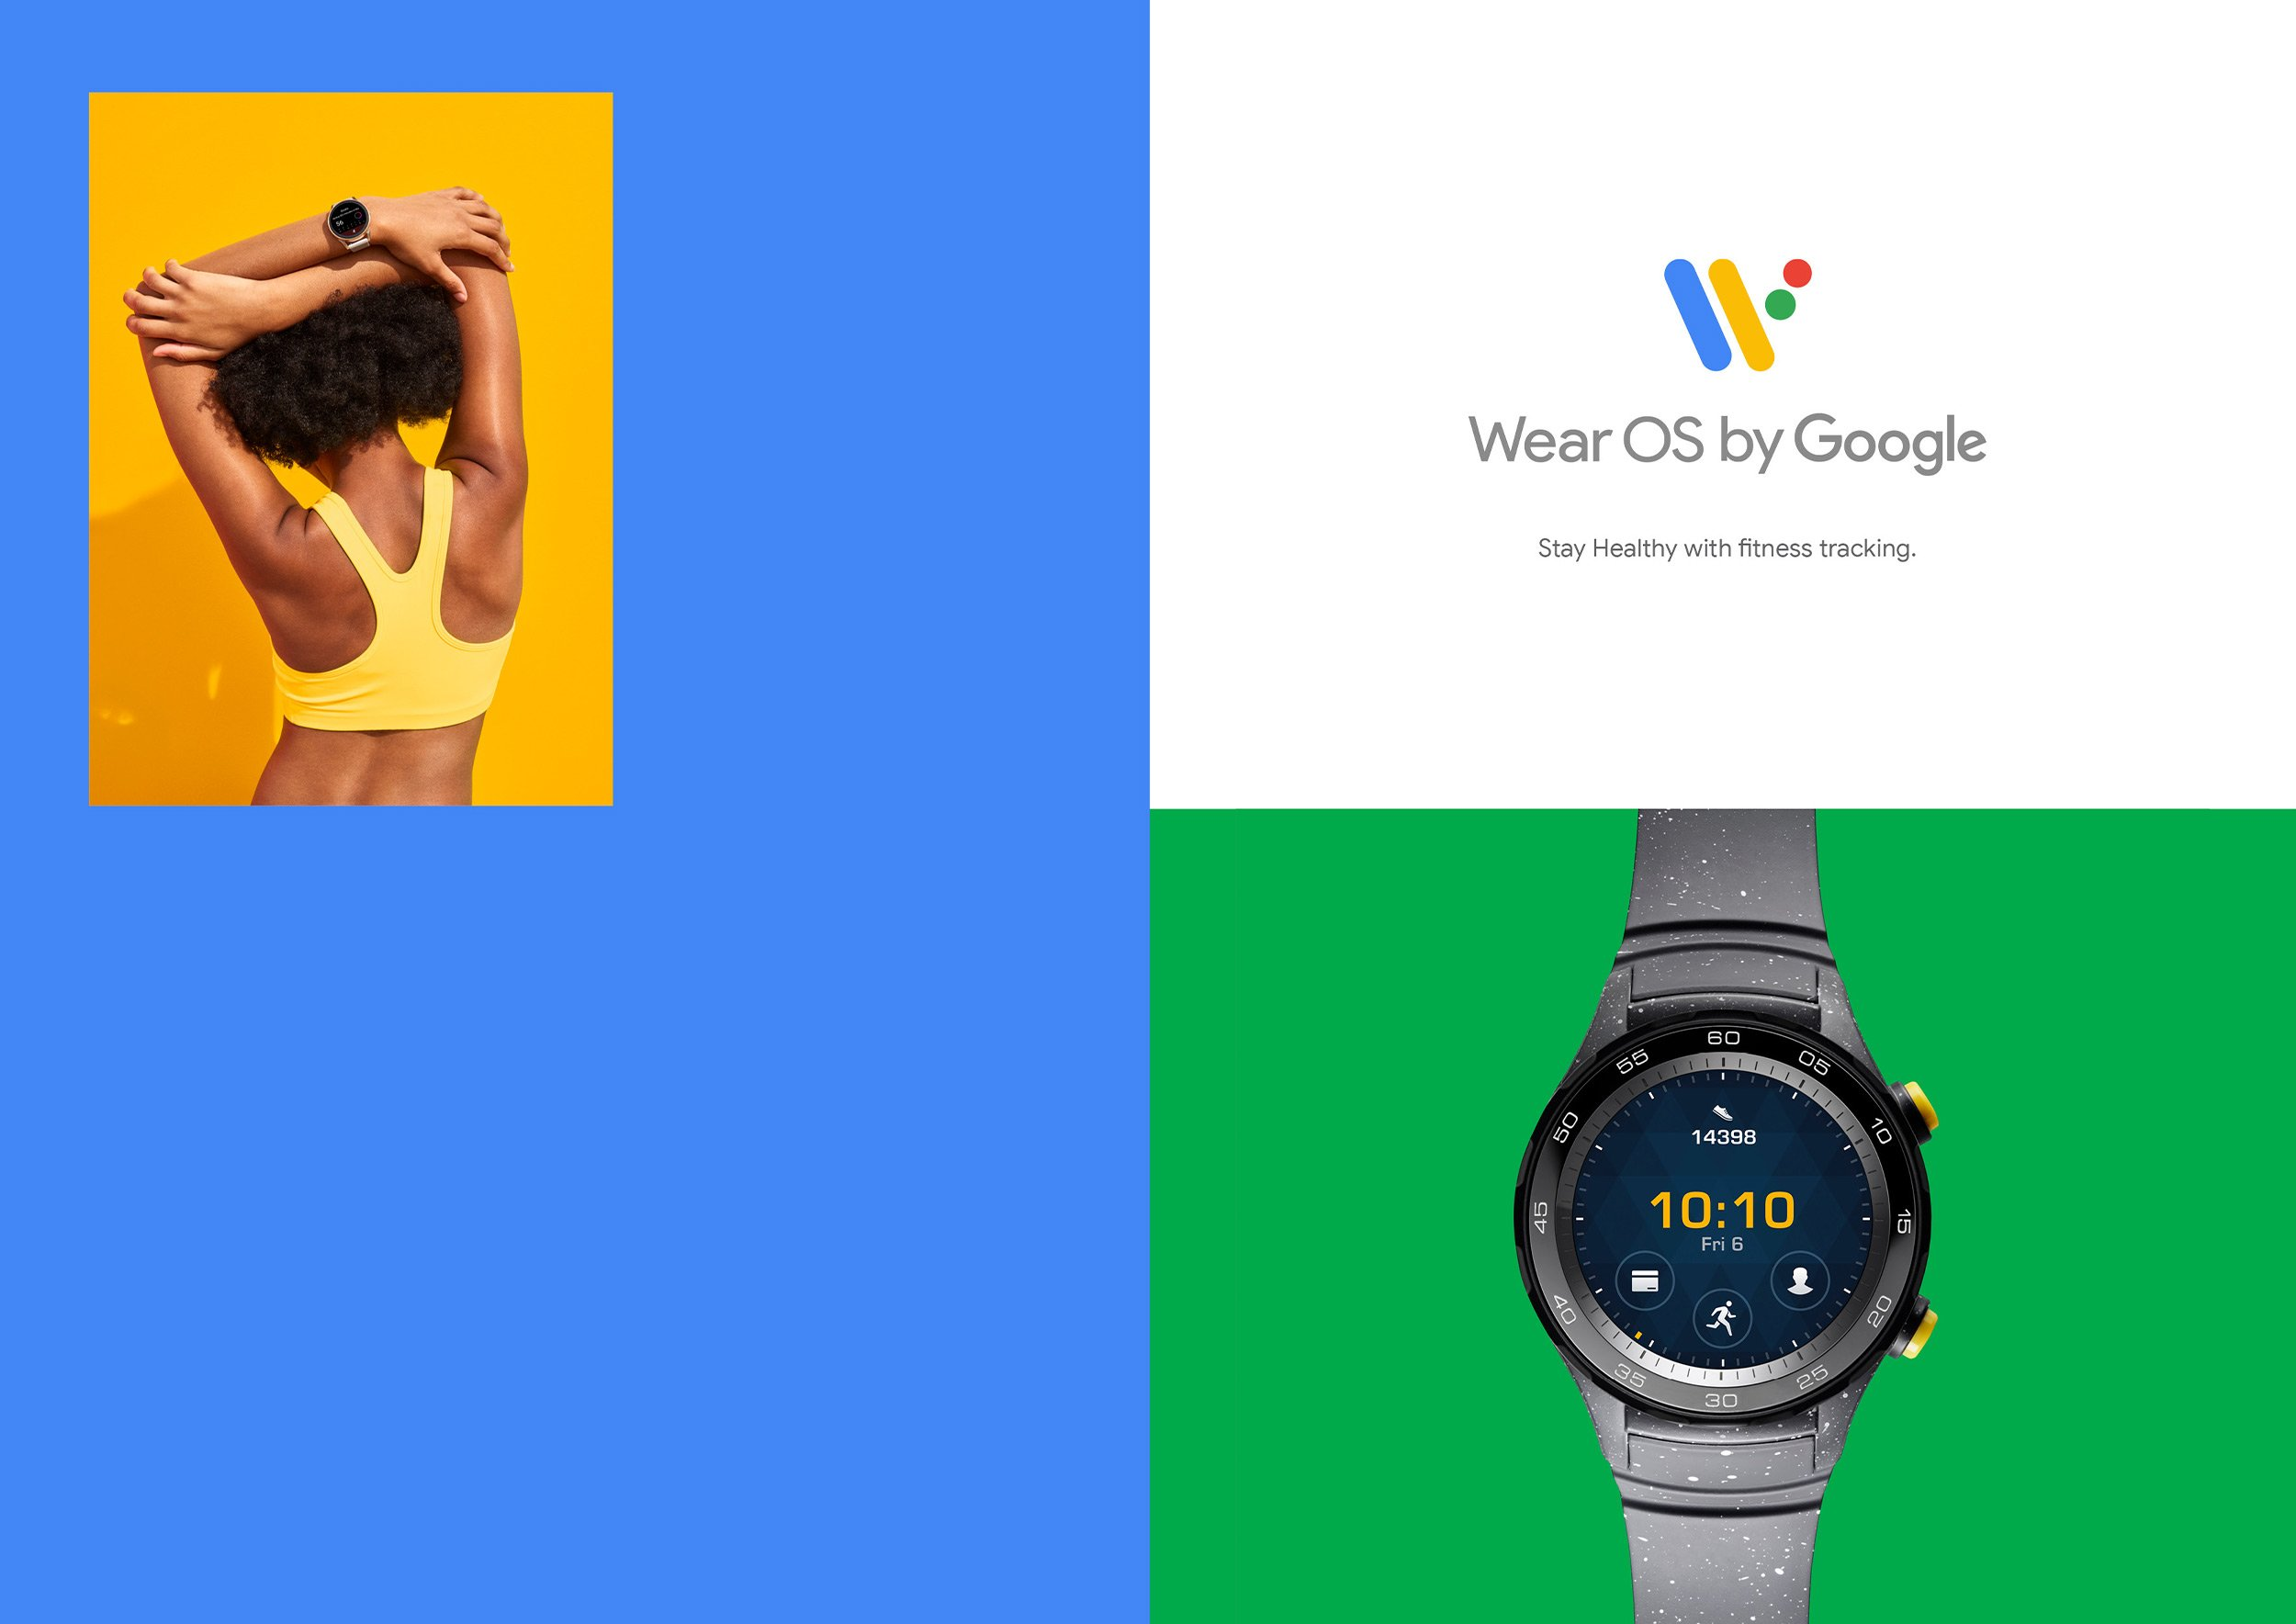 Google Wear OS campaign as, Stay Healthy with fitness tracking. Design by RoAndCo